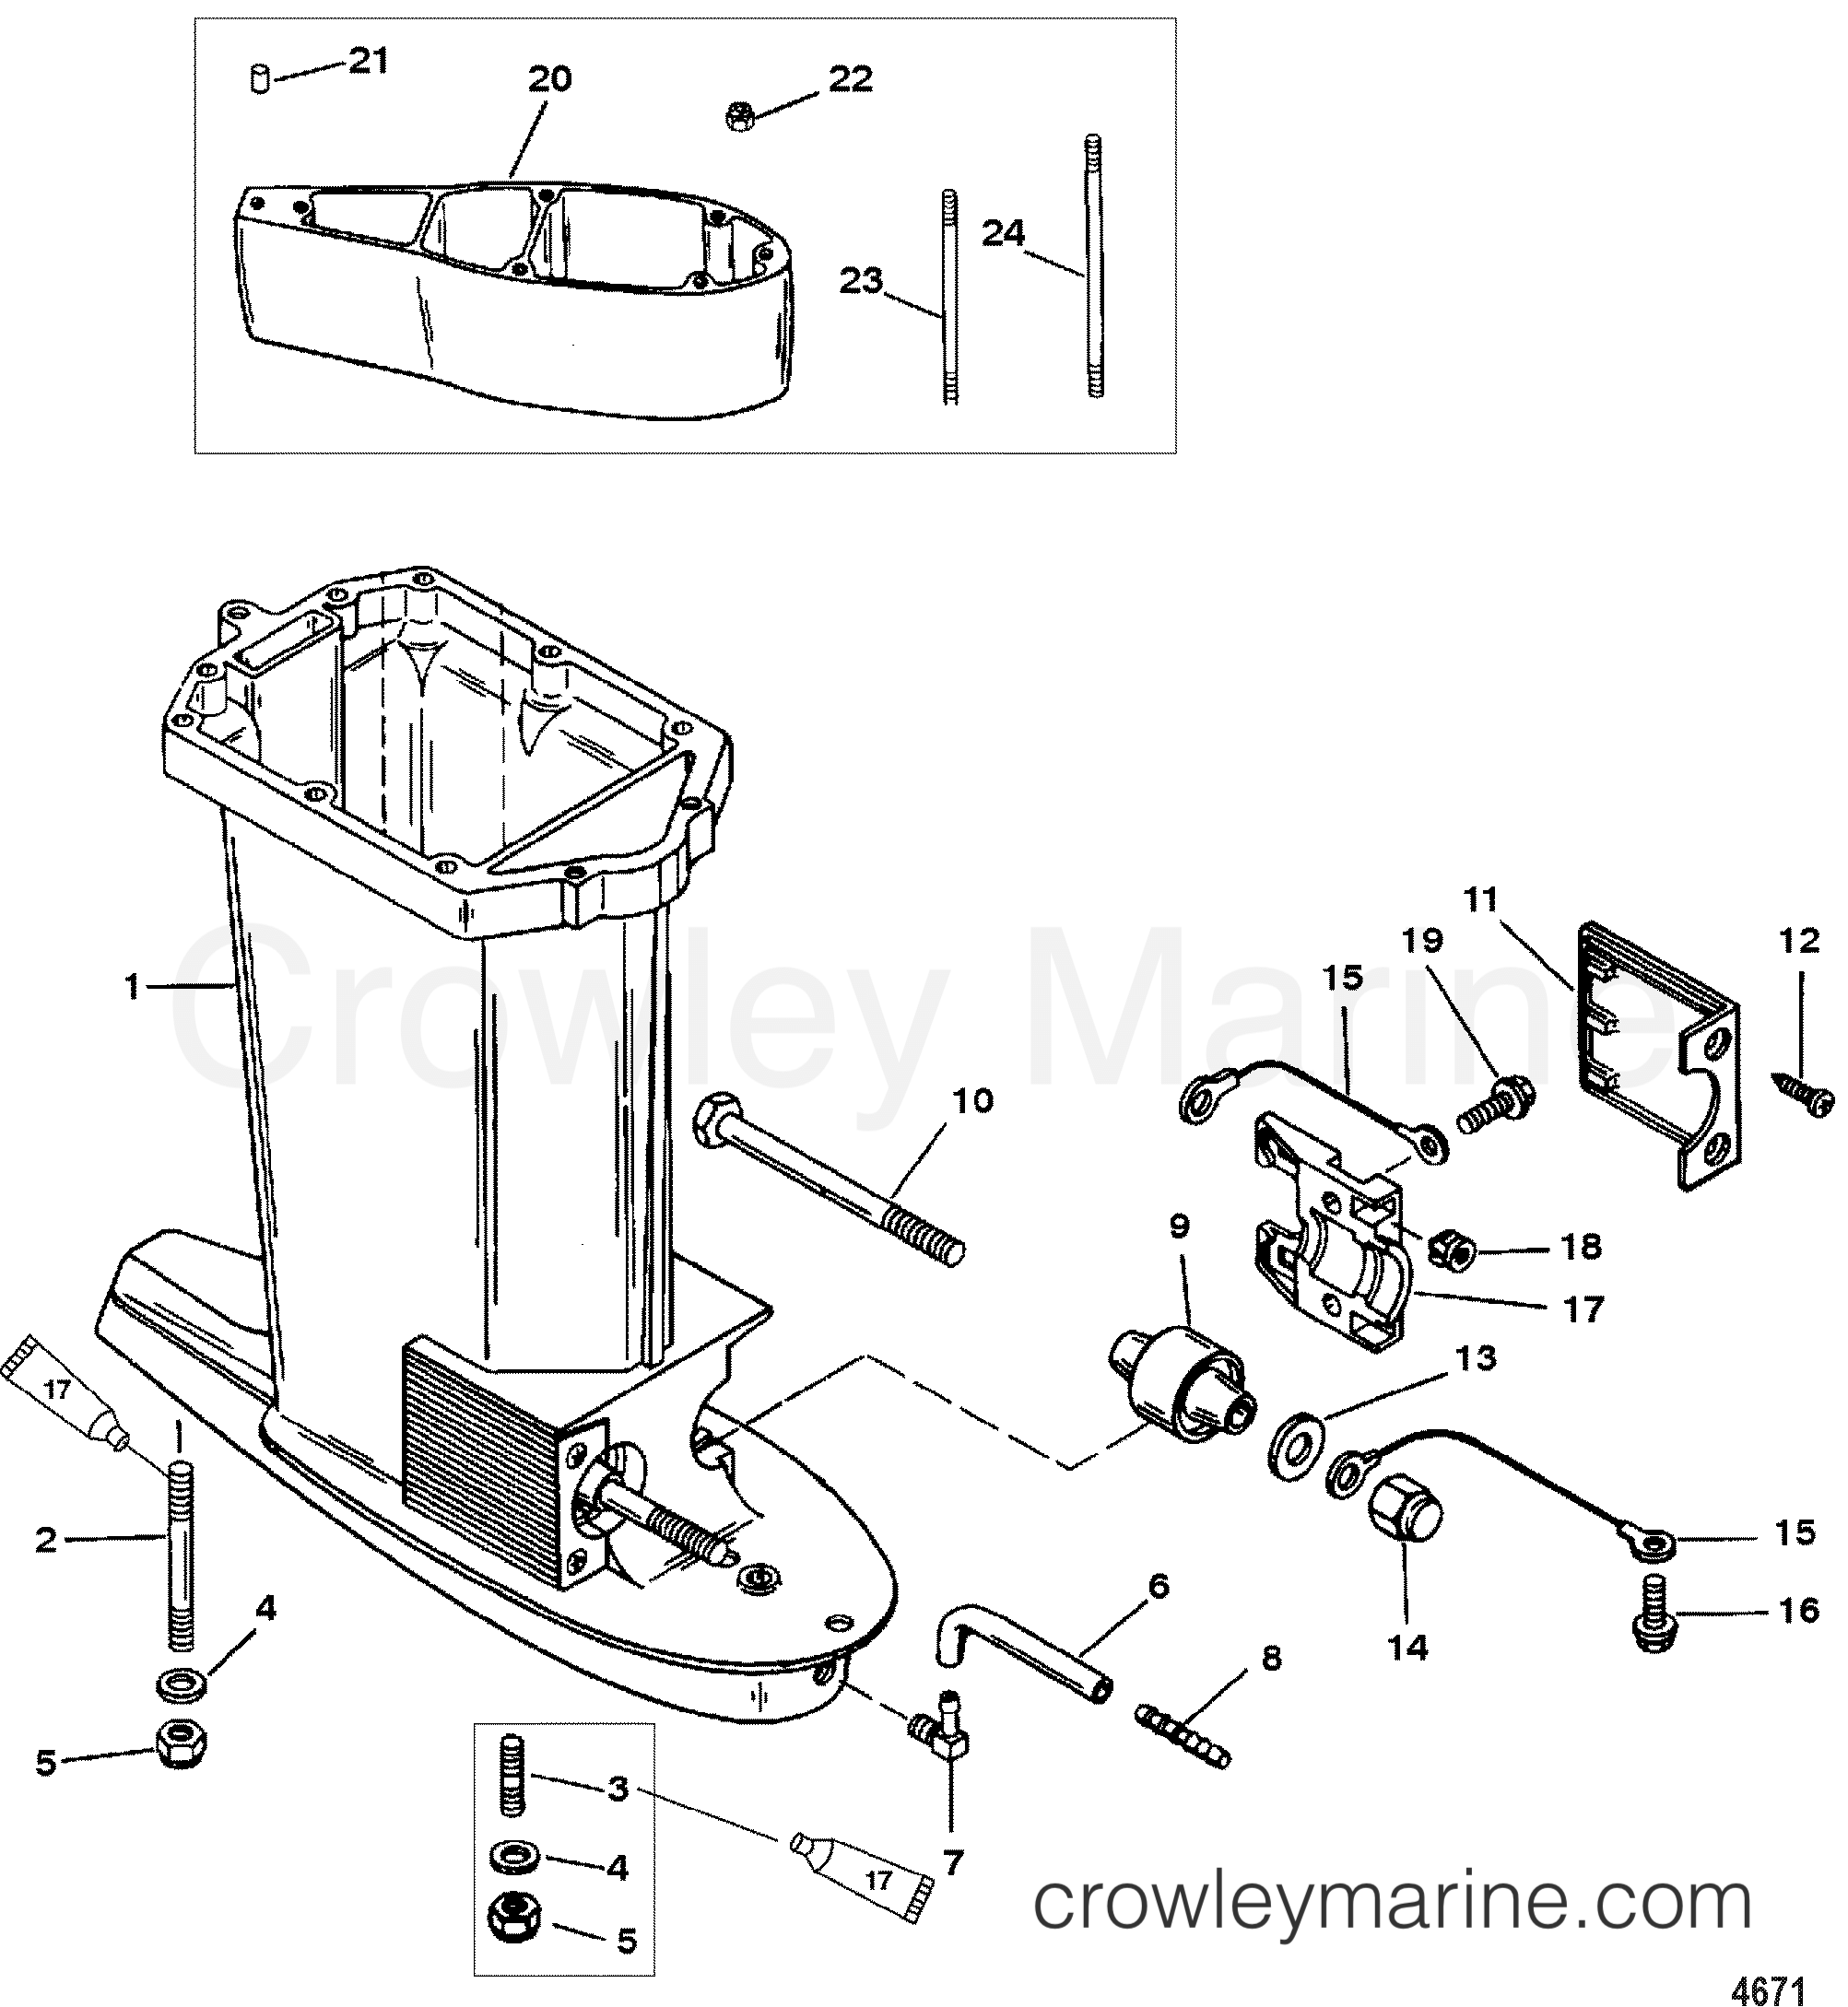 Serial Range Mercury Outboard 90 (3 CYL.) - 0G760300 THRU 0T979999 [USA] DRIVESHAFT HOUSING(USA-0T800999/BEL-0P267999 AND BELOW) section